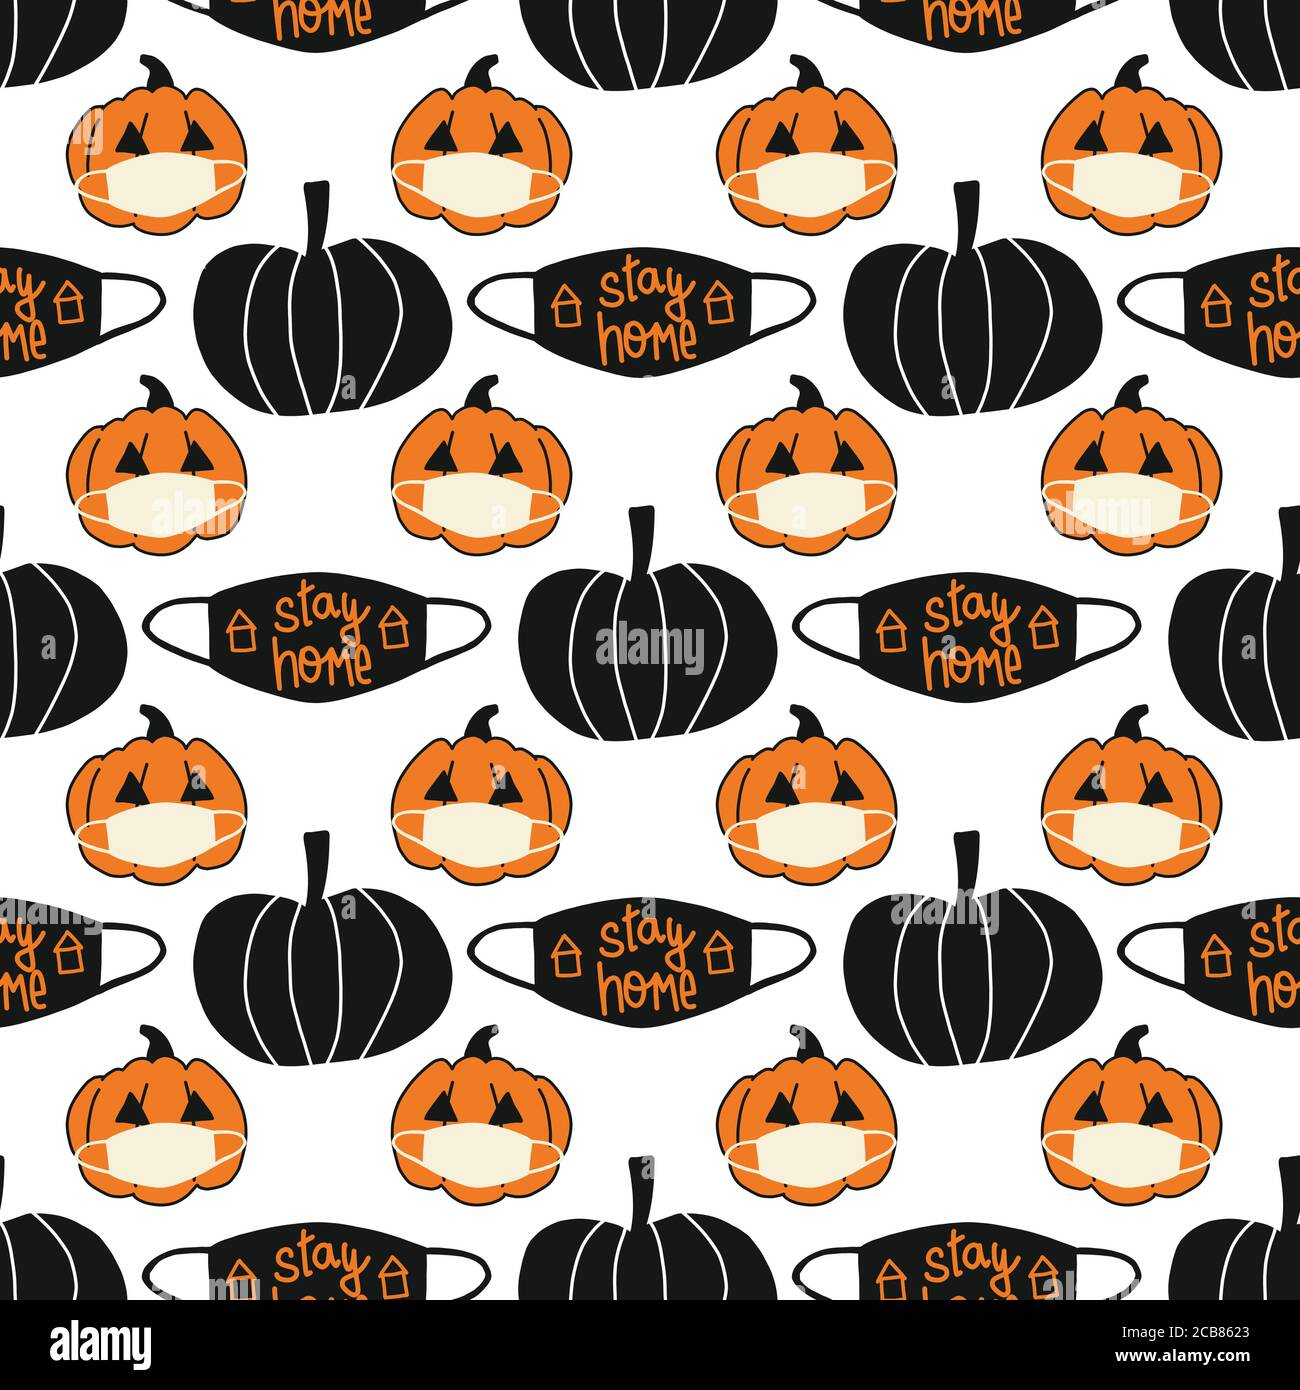 Halloween Background 2020 Halloween 2020 Stay Home seamless vector background. Repeating